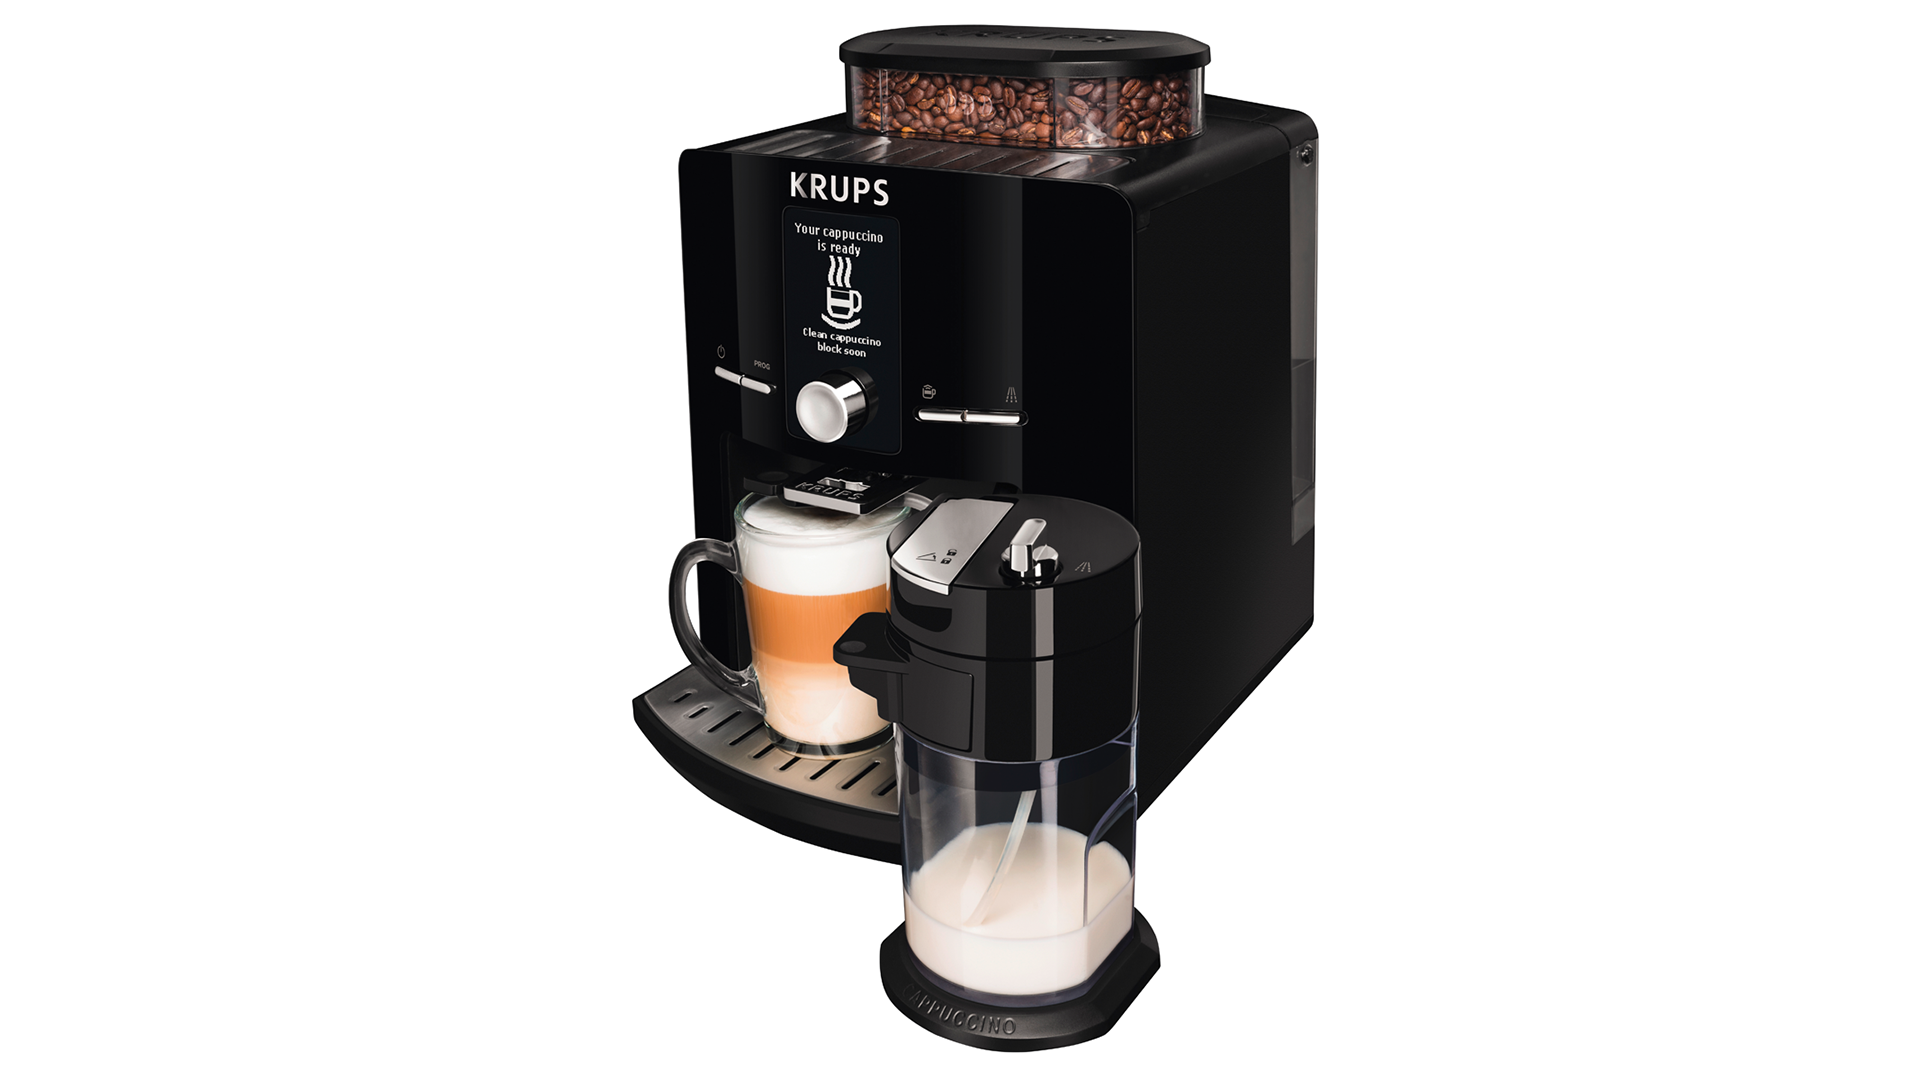 Krups Coffee Maker Reviews Ratings : Krups EA8298 Espresseria review Expert Reviews